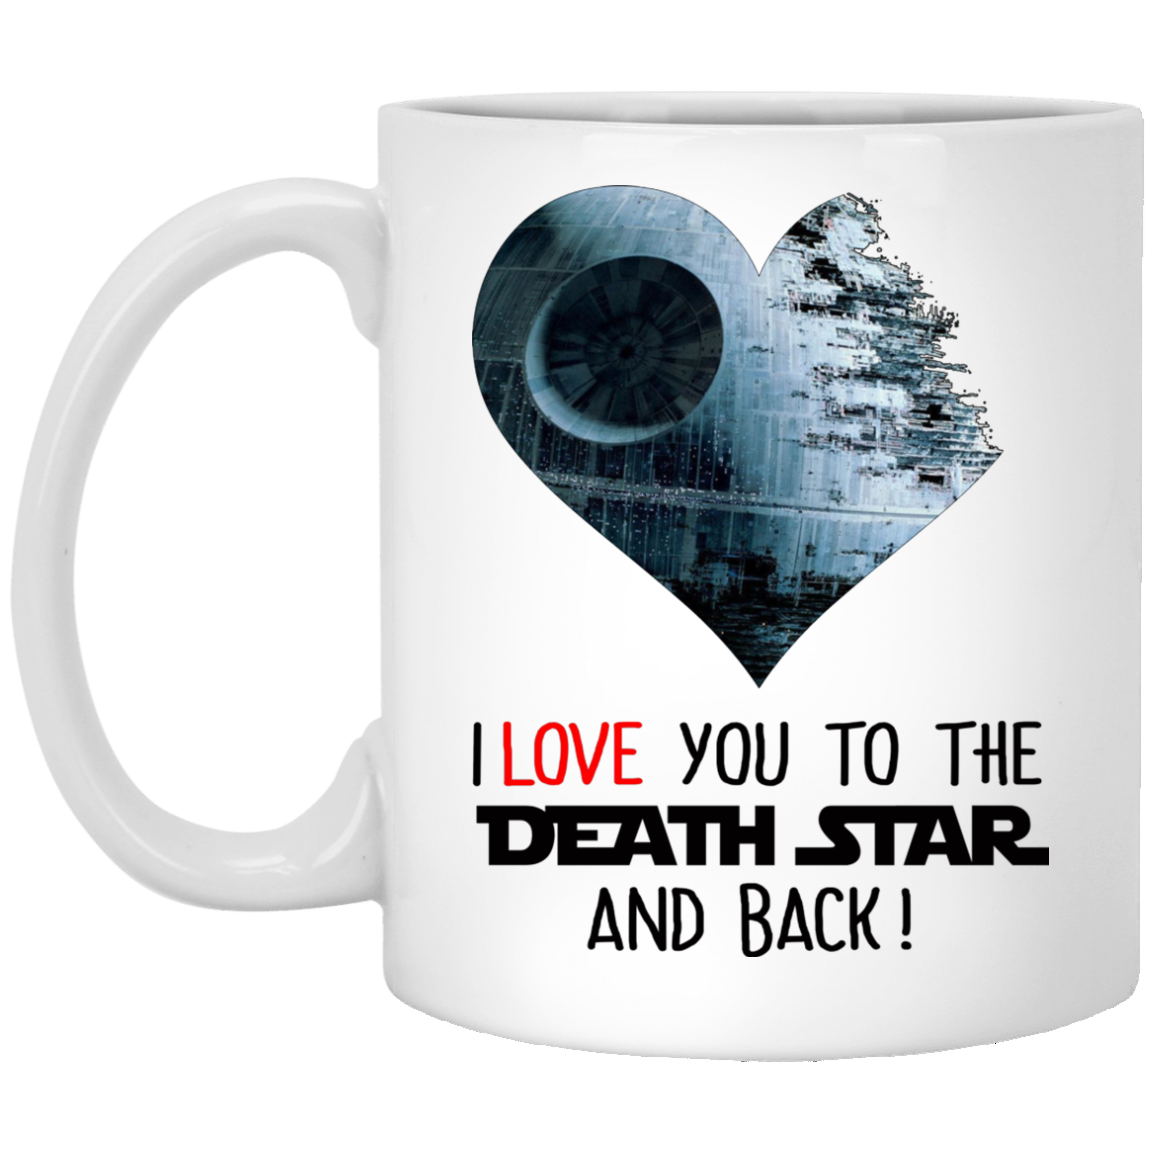 image 34 - I love you to the Death Star and back mug